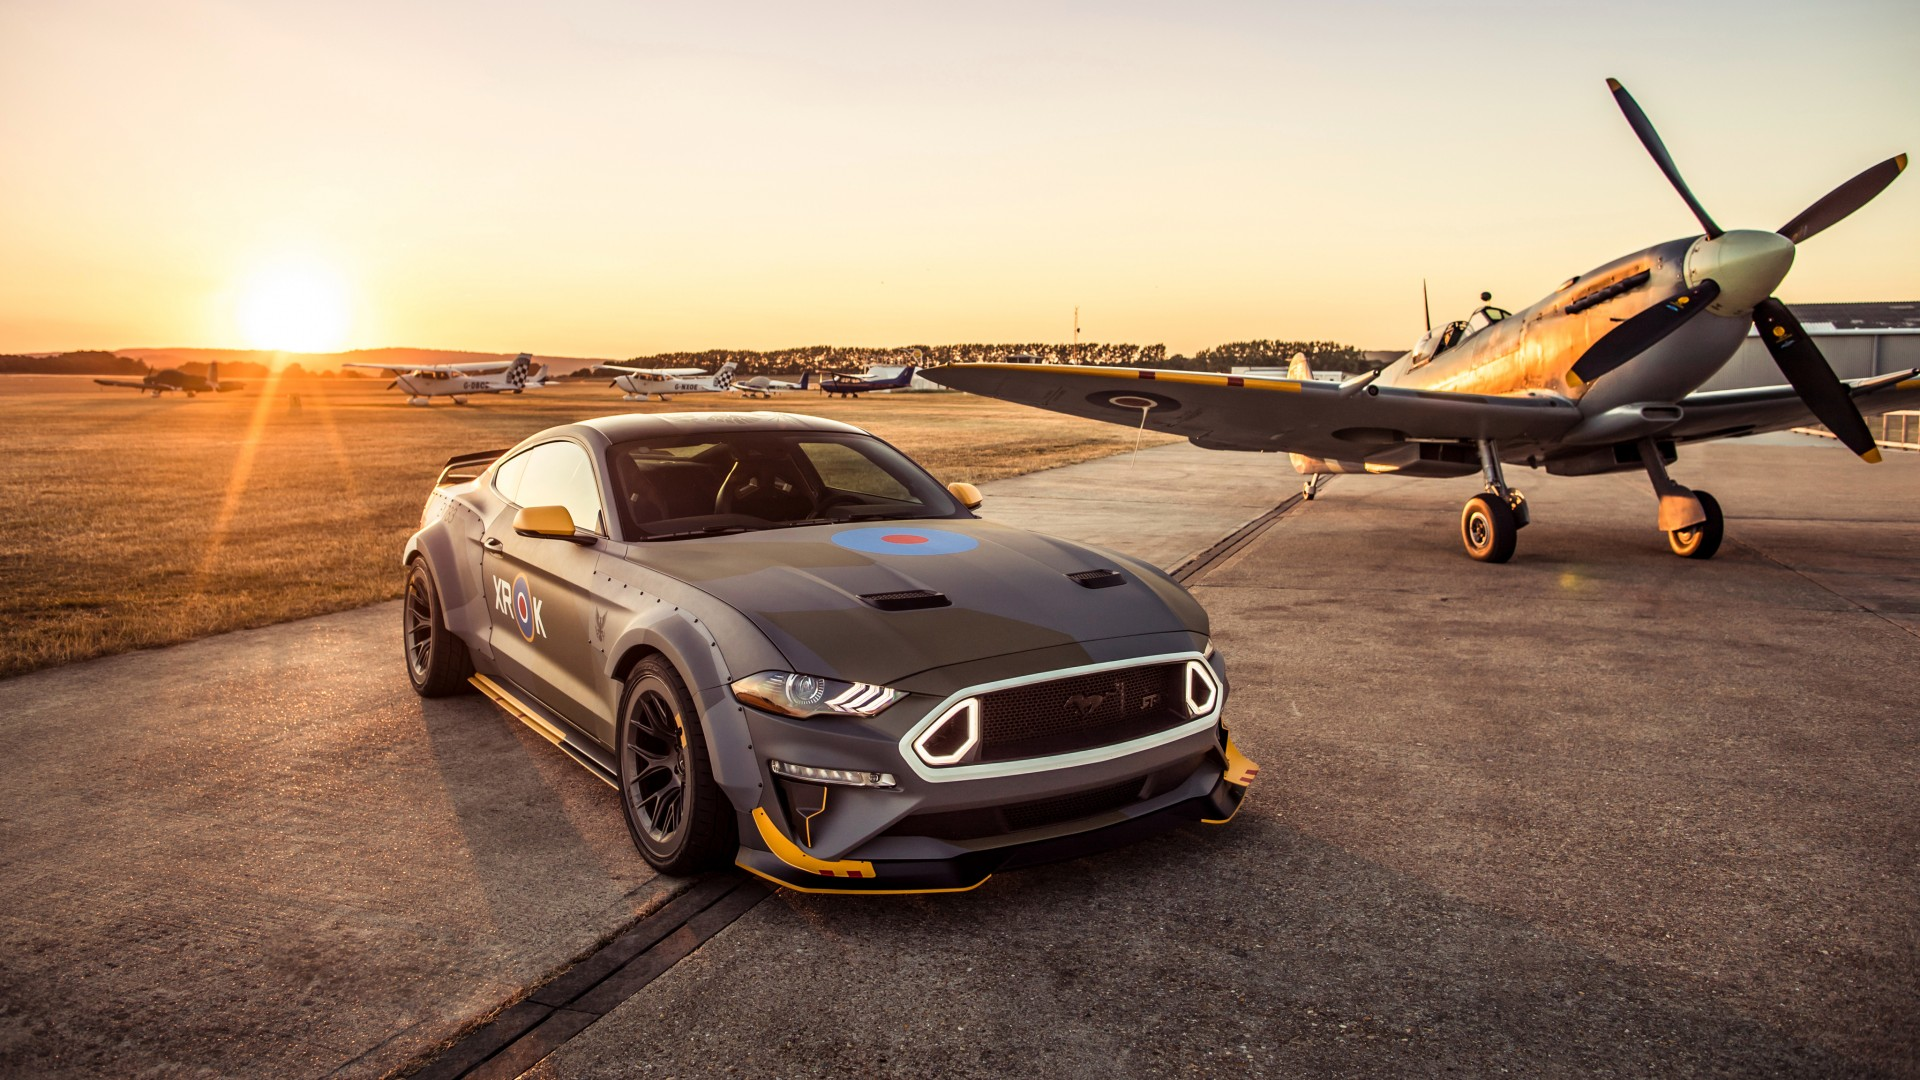 Ford Eagle Squadron Mustang Gt 2018 4k 3 Wallpaper Hd